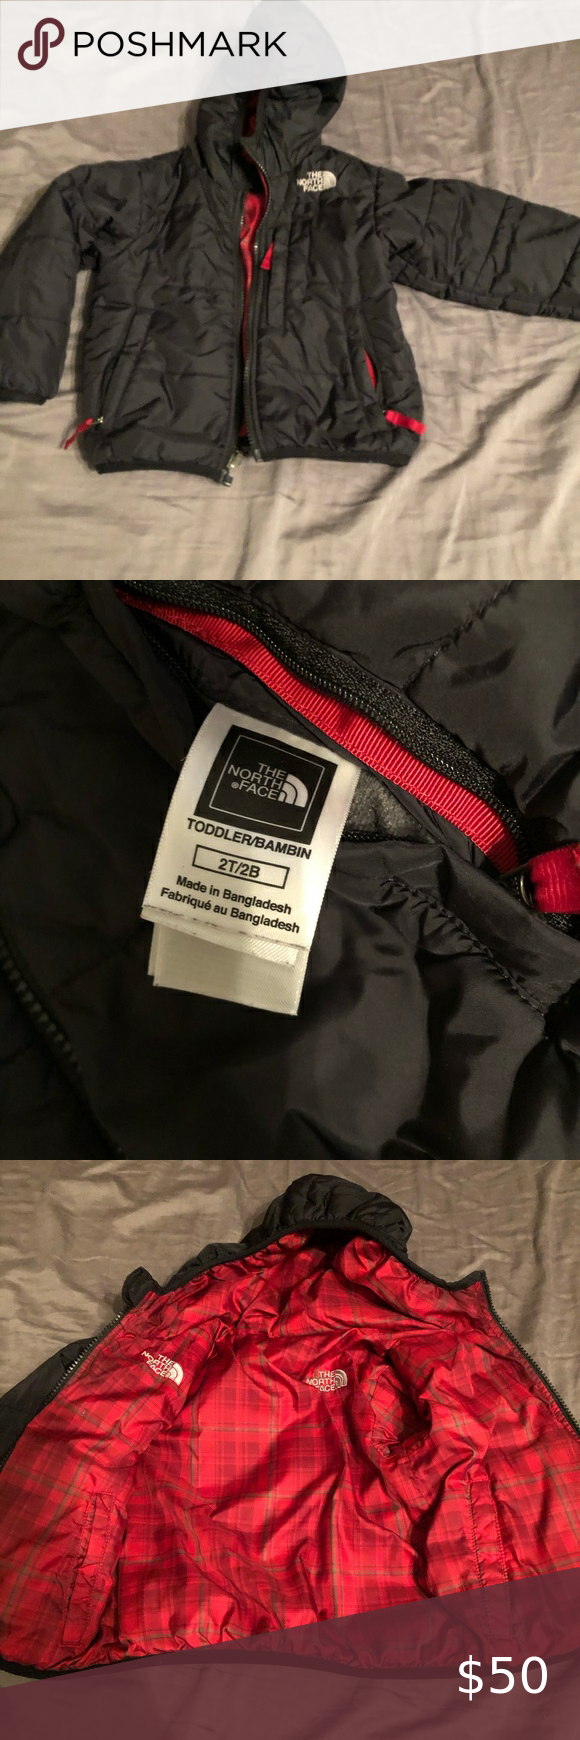 2t North Face Jacket Reversible North Face Jacket The North Face Black North Face [ 1740 x 580 Pixel ]